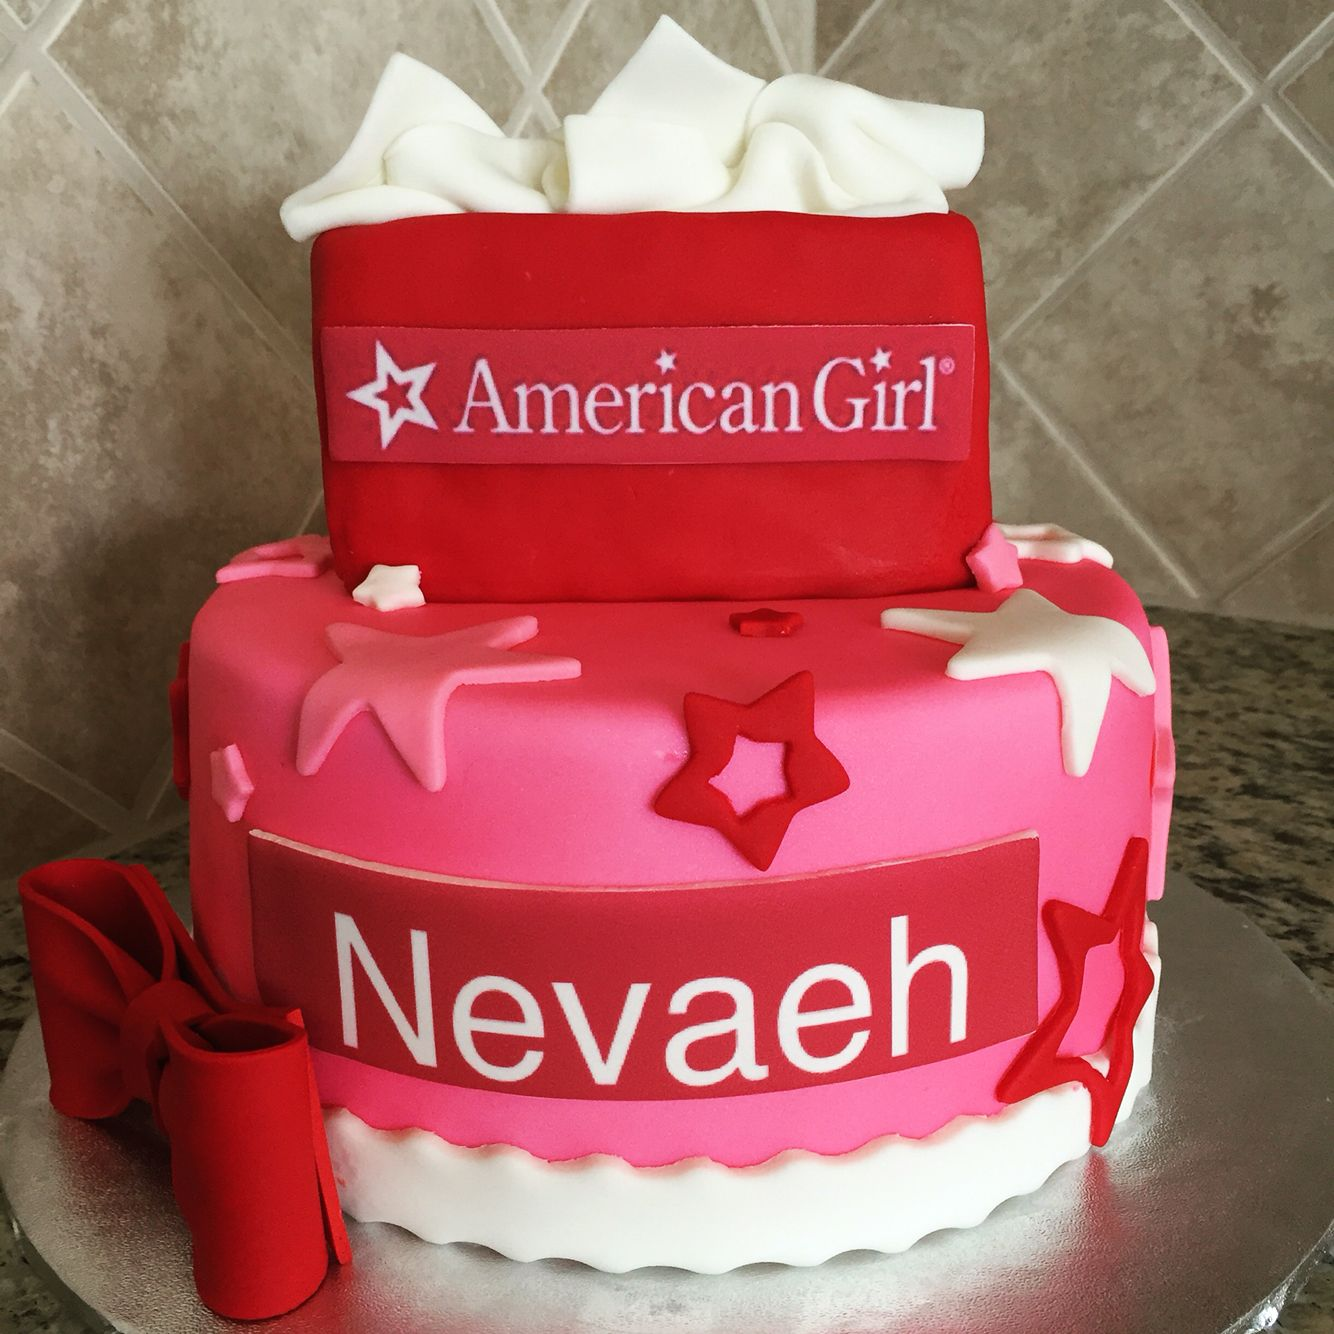 Astonishing American Girl Cake No White Border Name Plate Or Giant Bow Personalised Birthday Cards Paralily Jamesorg